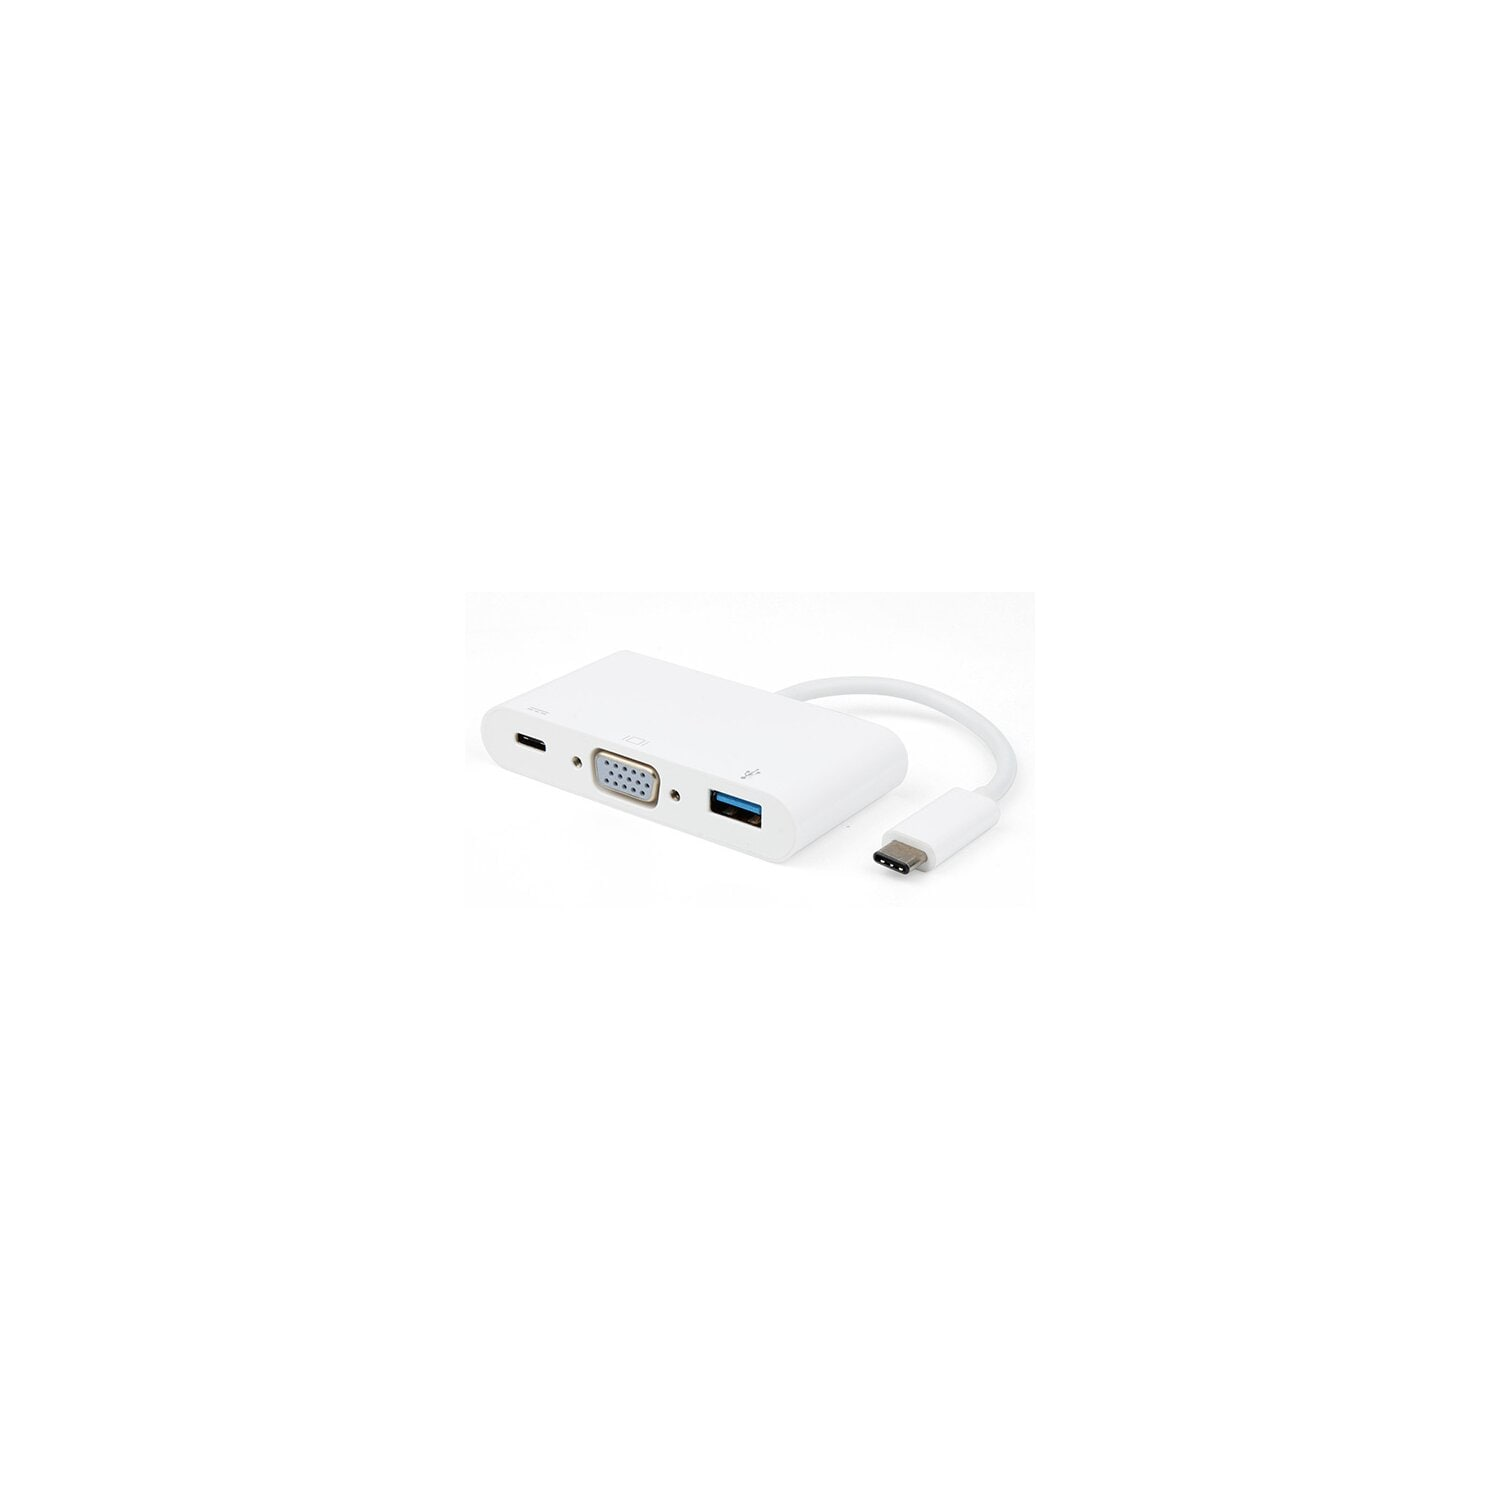 Adapter Adapter USB-C - USB-C/USB3.1/VGA VIVANCO 34294